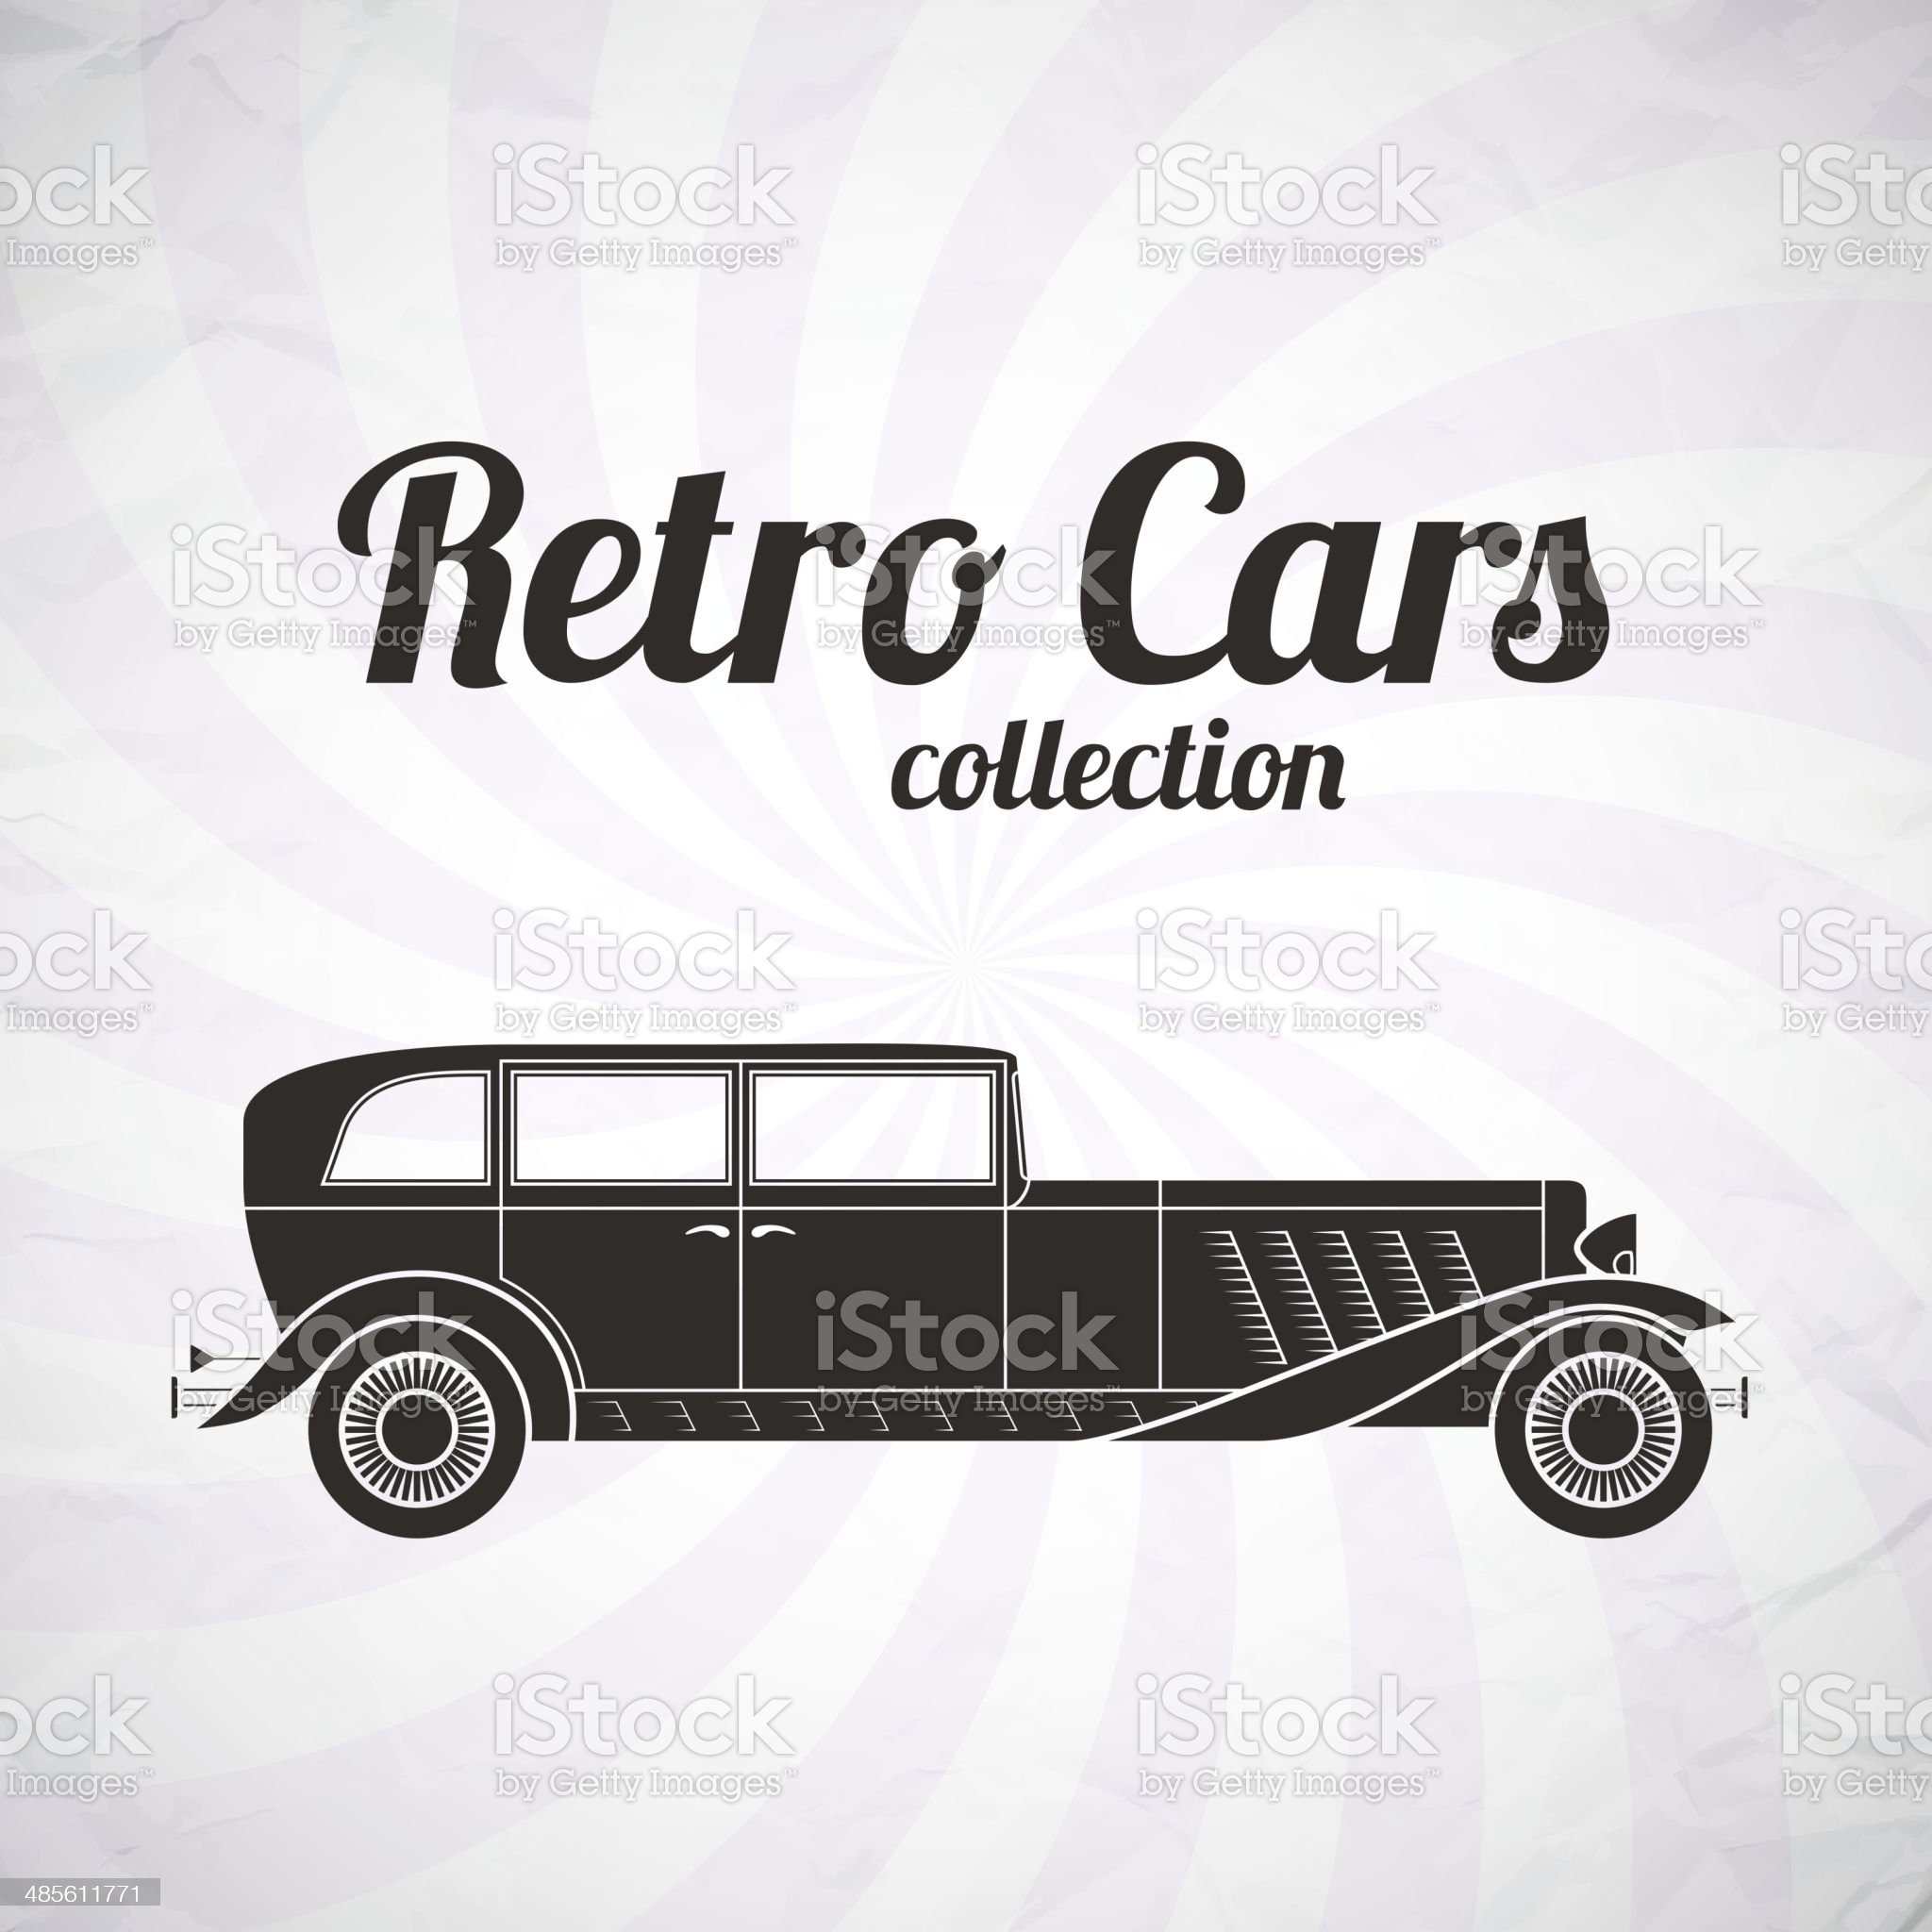 Retro cabriolet car, vintage collection royalty-free stock vector art